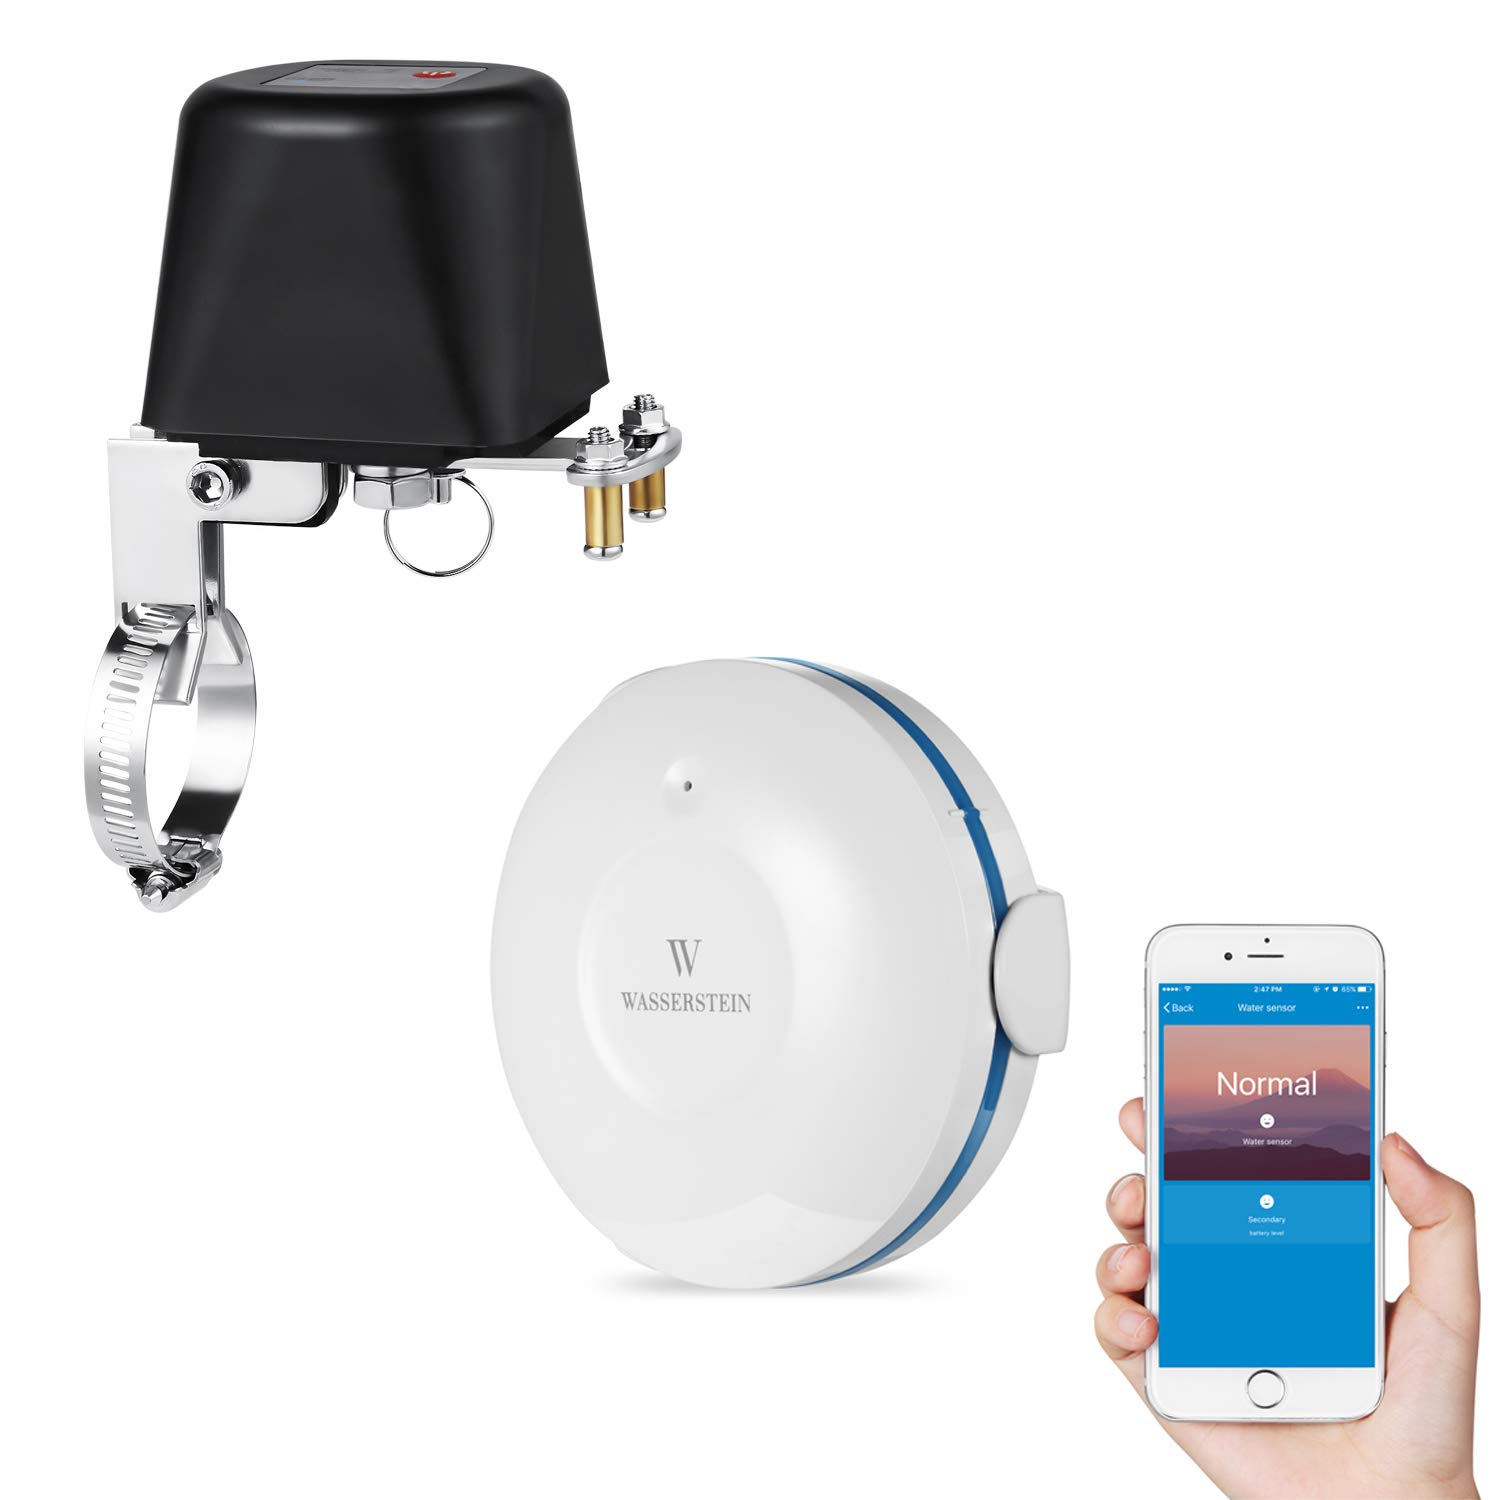 Smart Wi-Fi Water Sensor Bundled with Valve Controller - iOS/Android App Control Water Shut Off Valve for Flood and Leak Detection Compatible with Alexa, and Google Home by Wasserstein